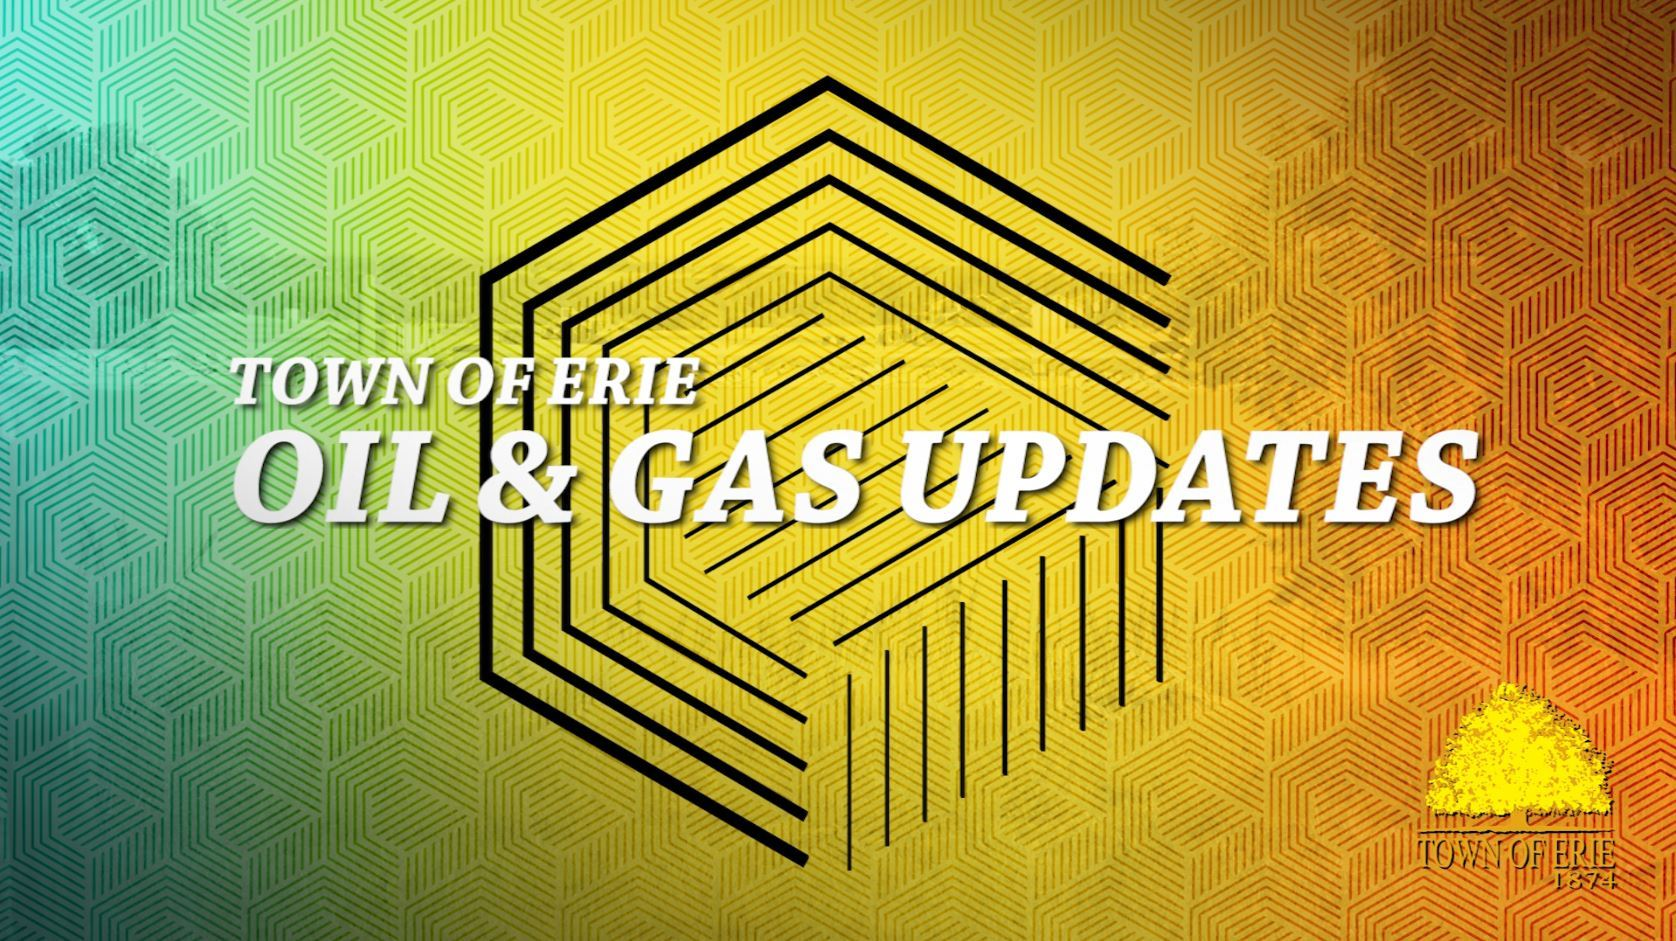 Oil & Gas Updates from the Erie Board of Trustees